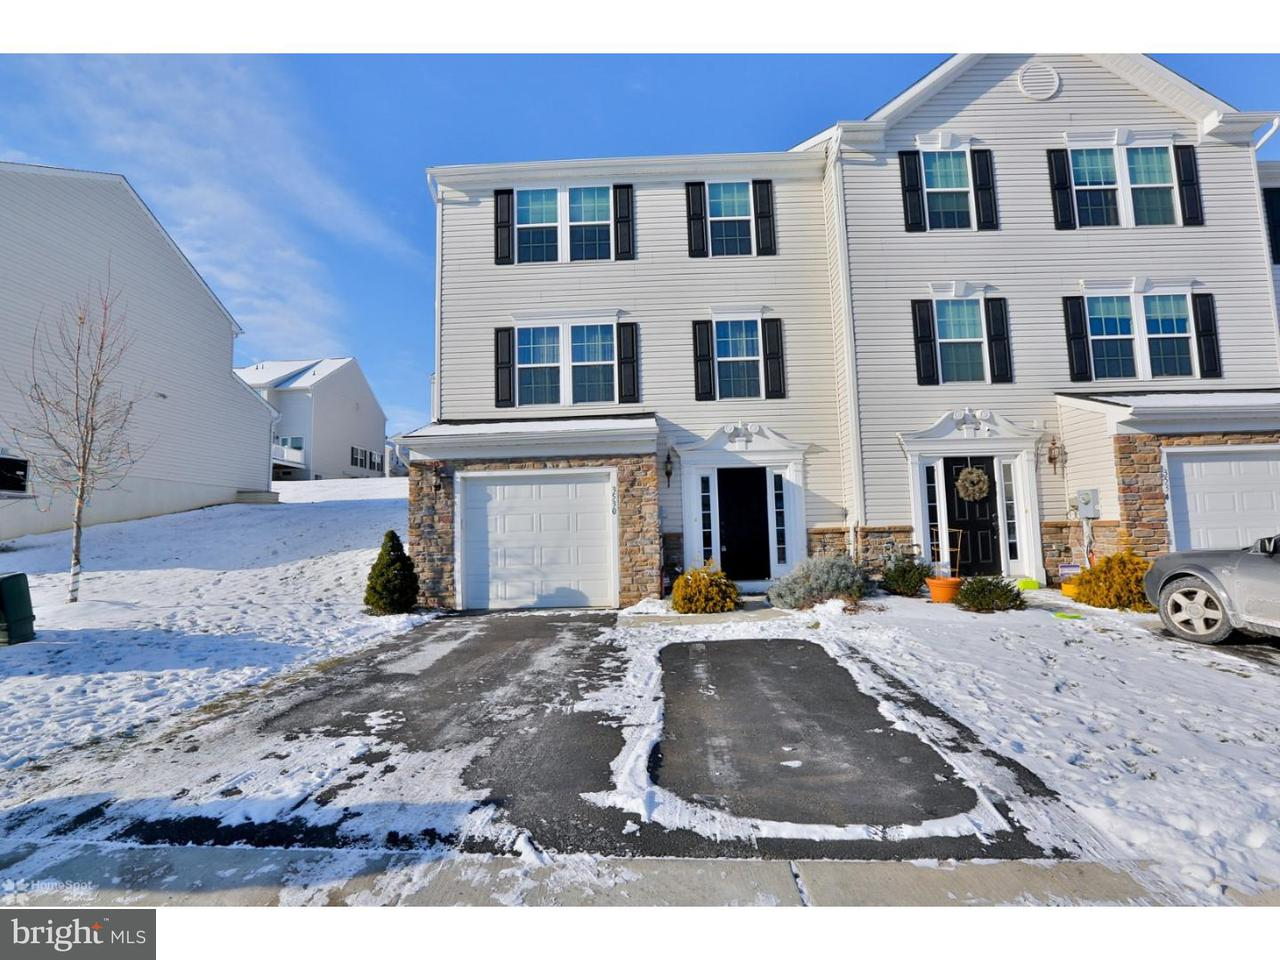 Townhouse for Sale at 3530 PENFIELD WAY Nazareth, Pennsylvania 18064 United States